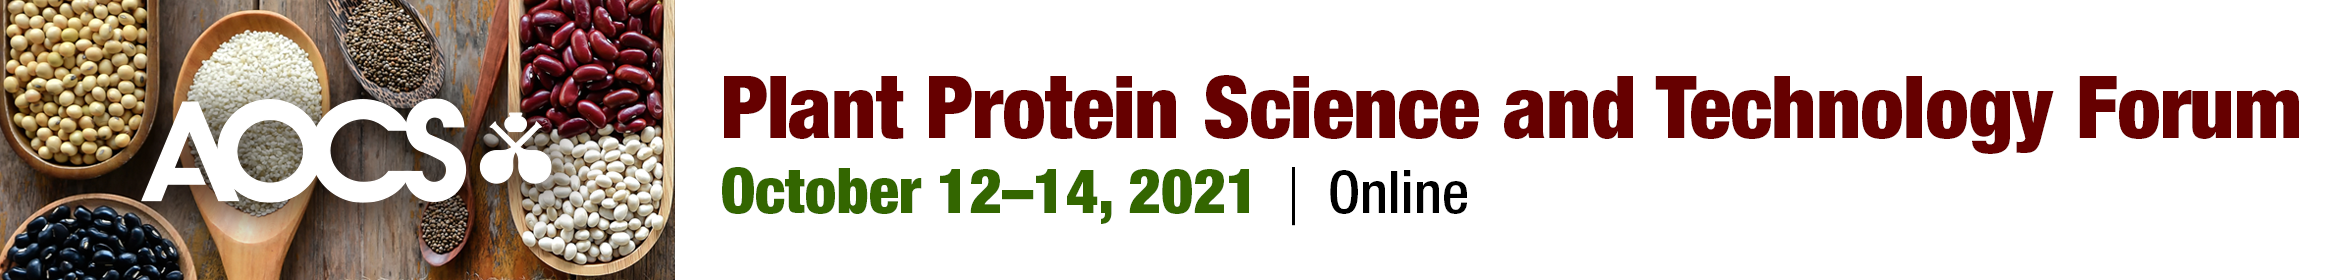 2021 AOCS Plant Protein Science & Technology Forum Main banner